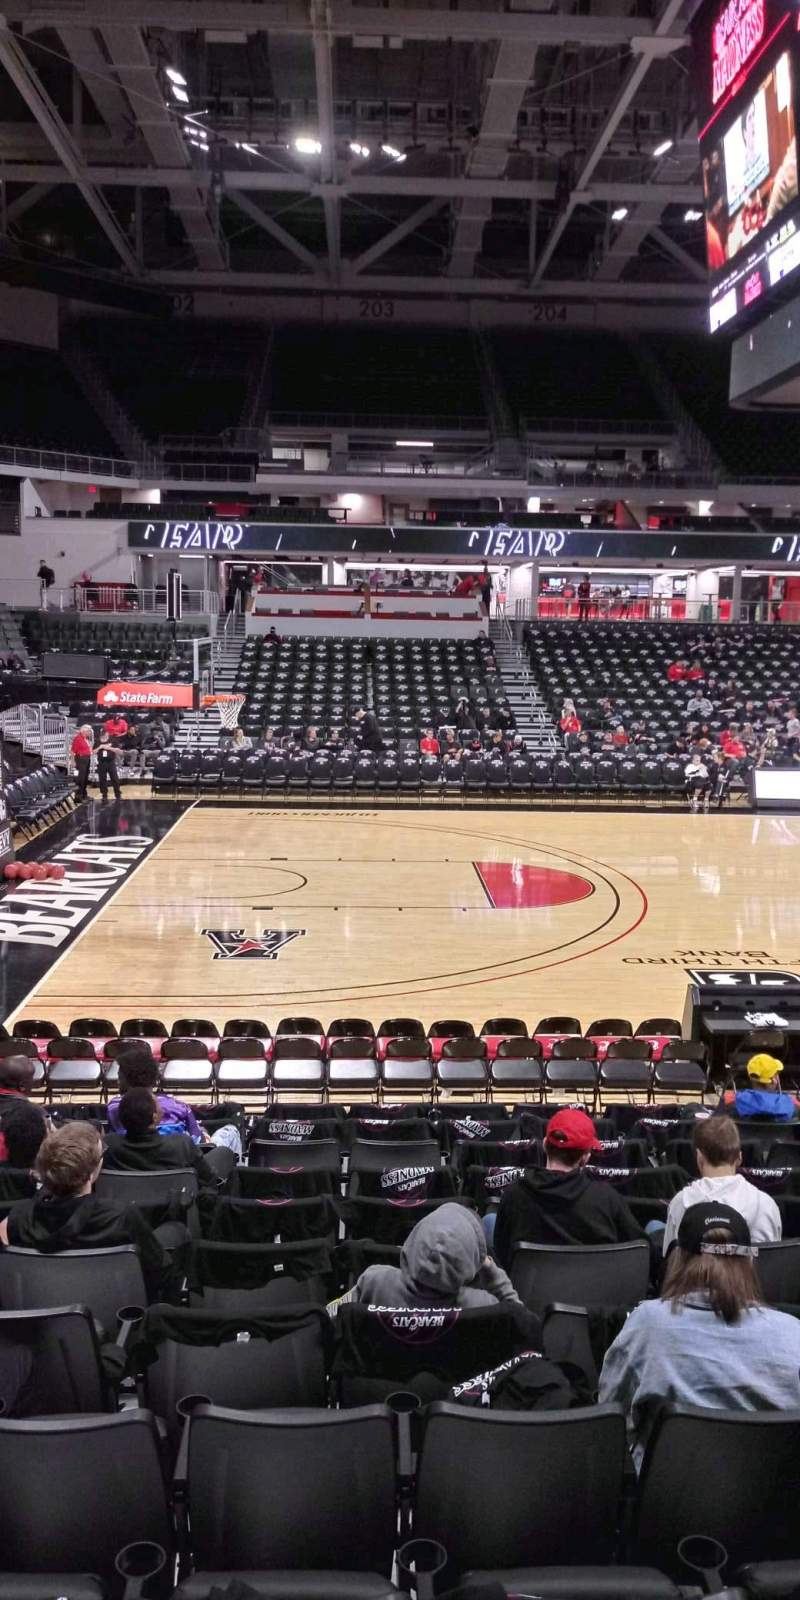 Seating view for Fifth Third Arena Section 117 Row 12 Seat 12